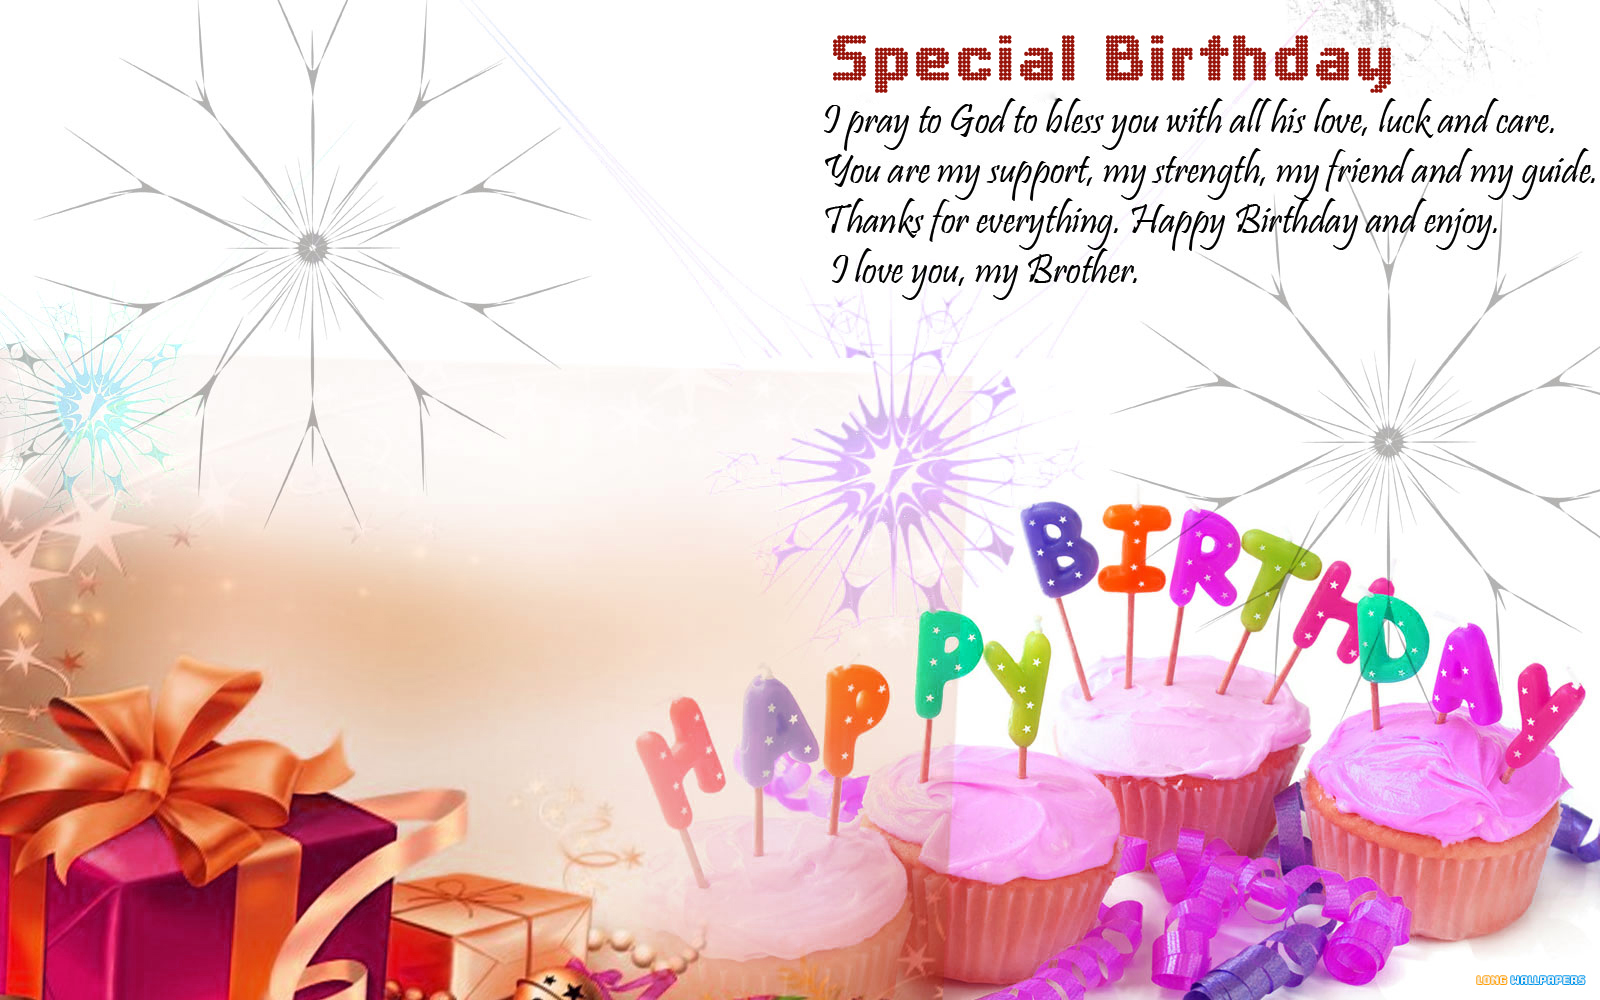 free text message birthday greetings ; fd830ce8359fa87d20c8aabfd073dbad